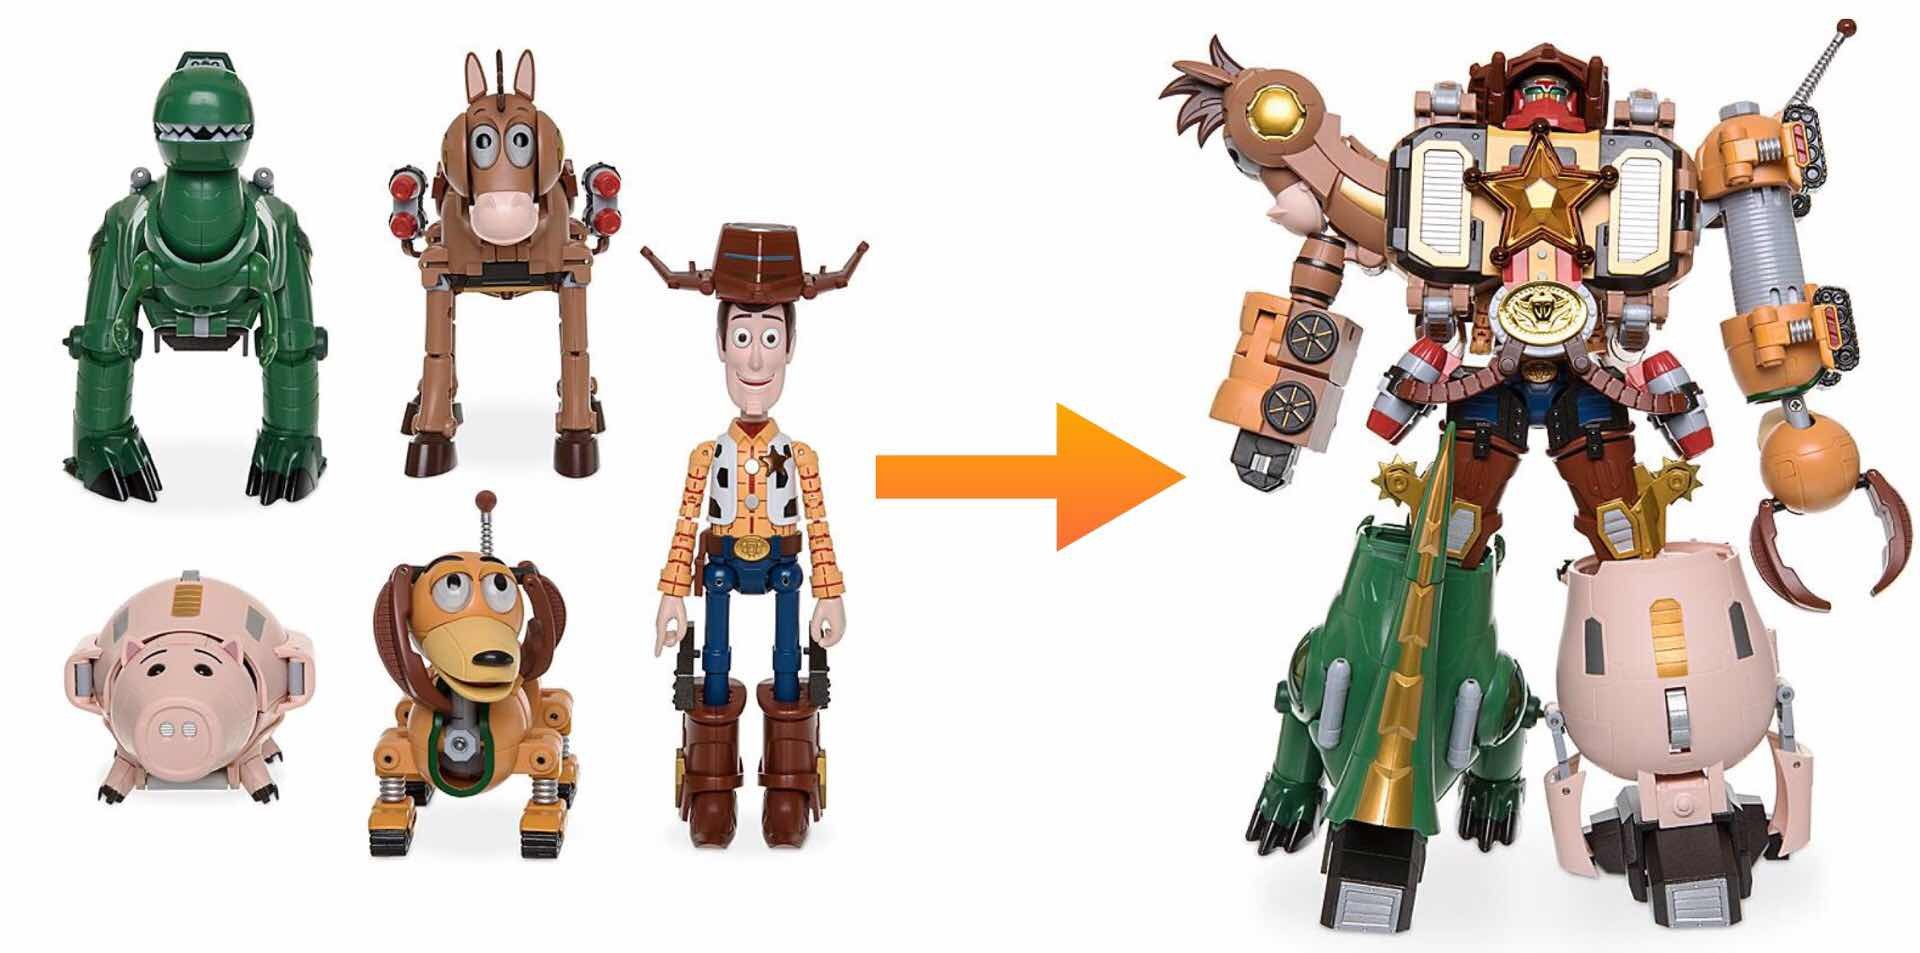 disney-bandai-toy-story-chogokin-mecha-toys-woody-sheriff-star